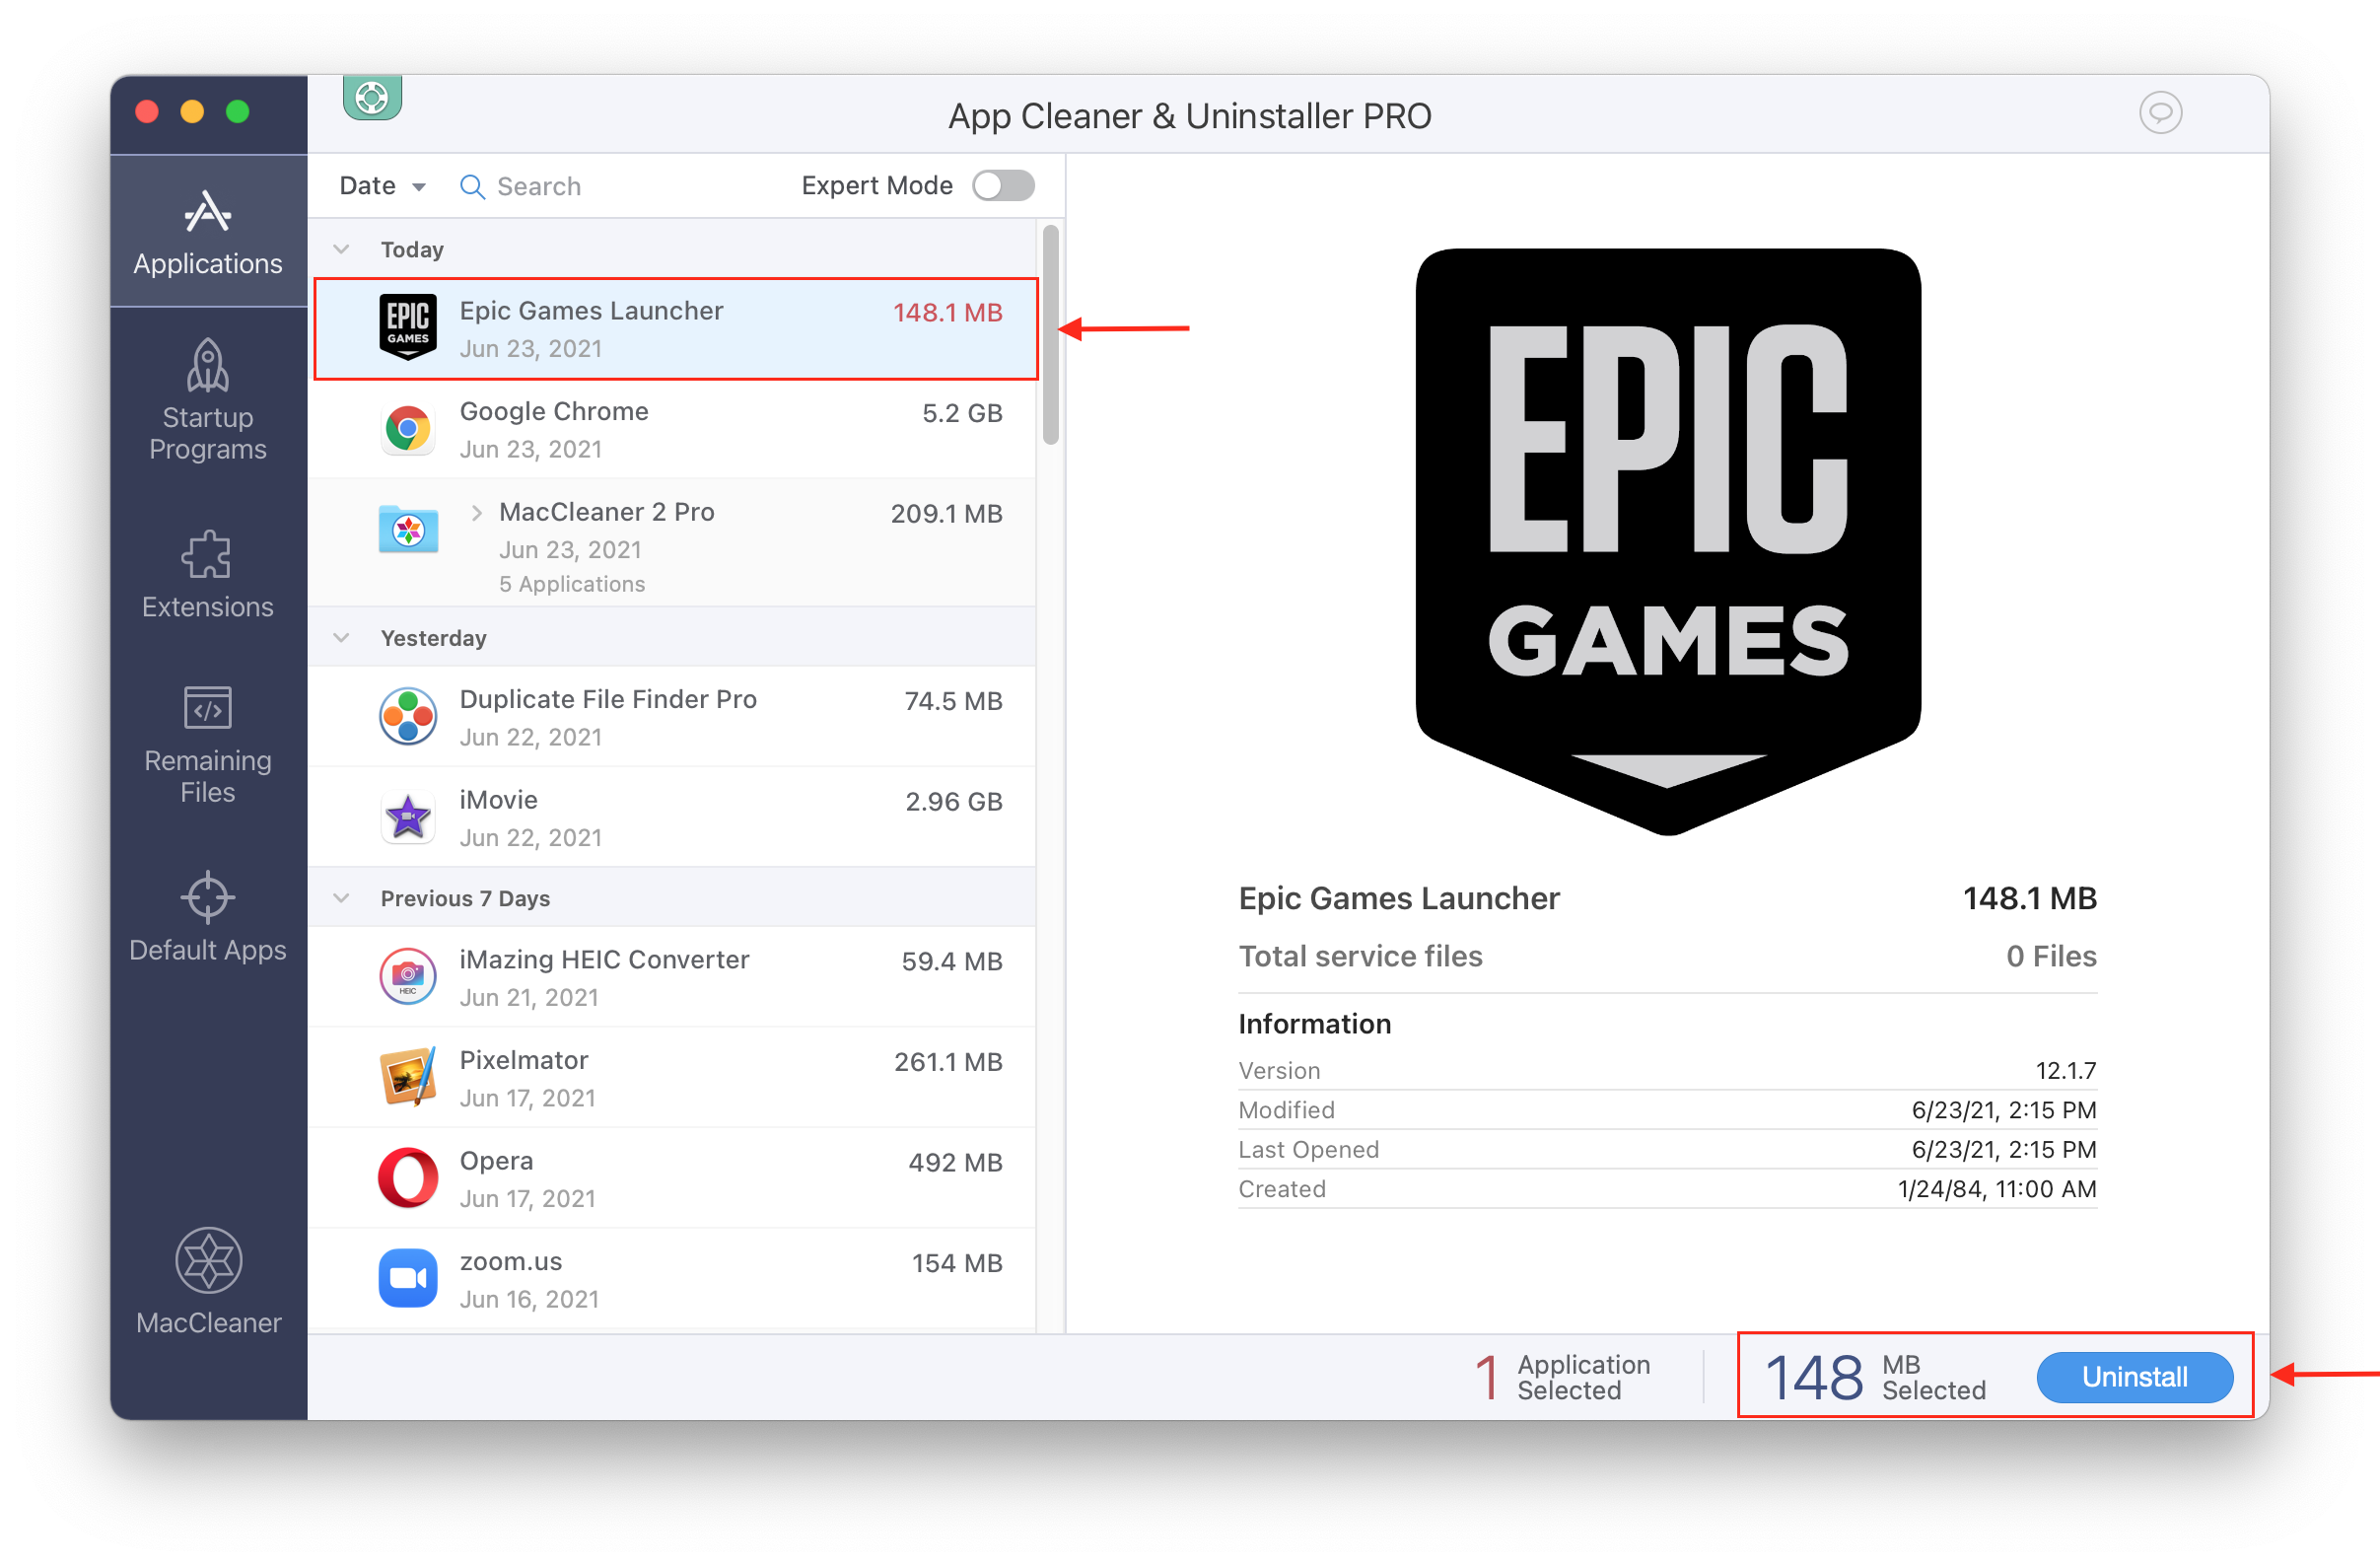 App Cleaner & Uninstaller window showing how to remove Epic games